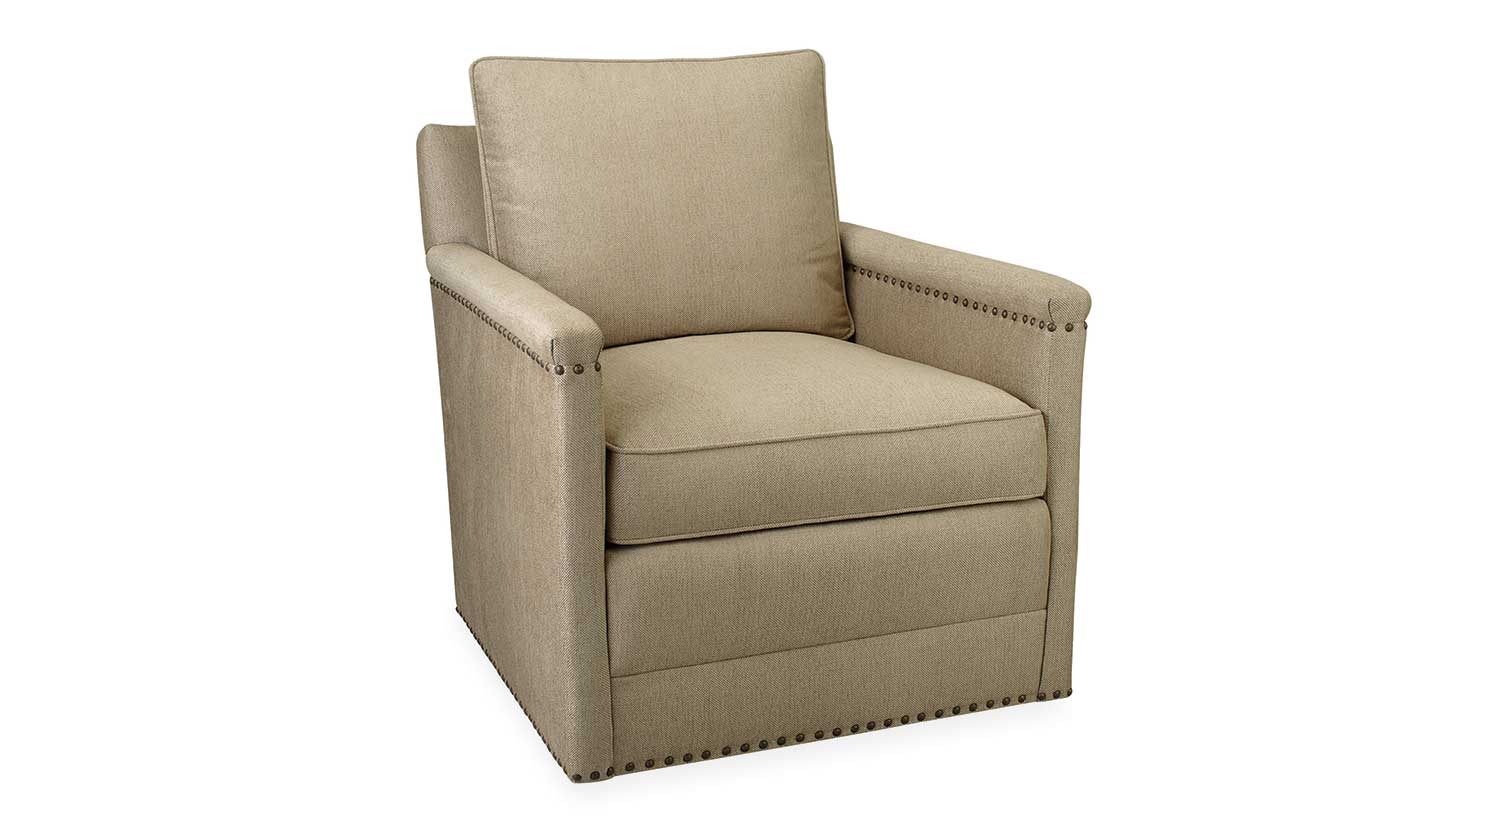 circle furniture chairs elastic folding chair covers paige swivel boston living